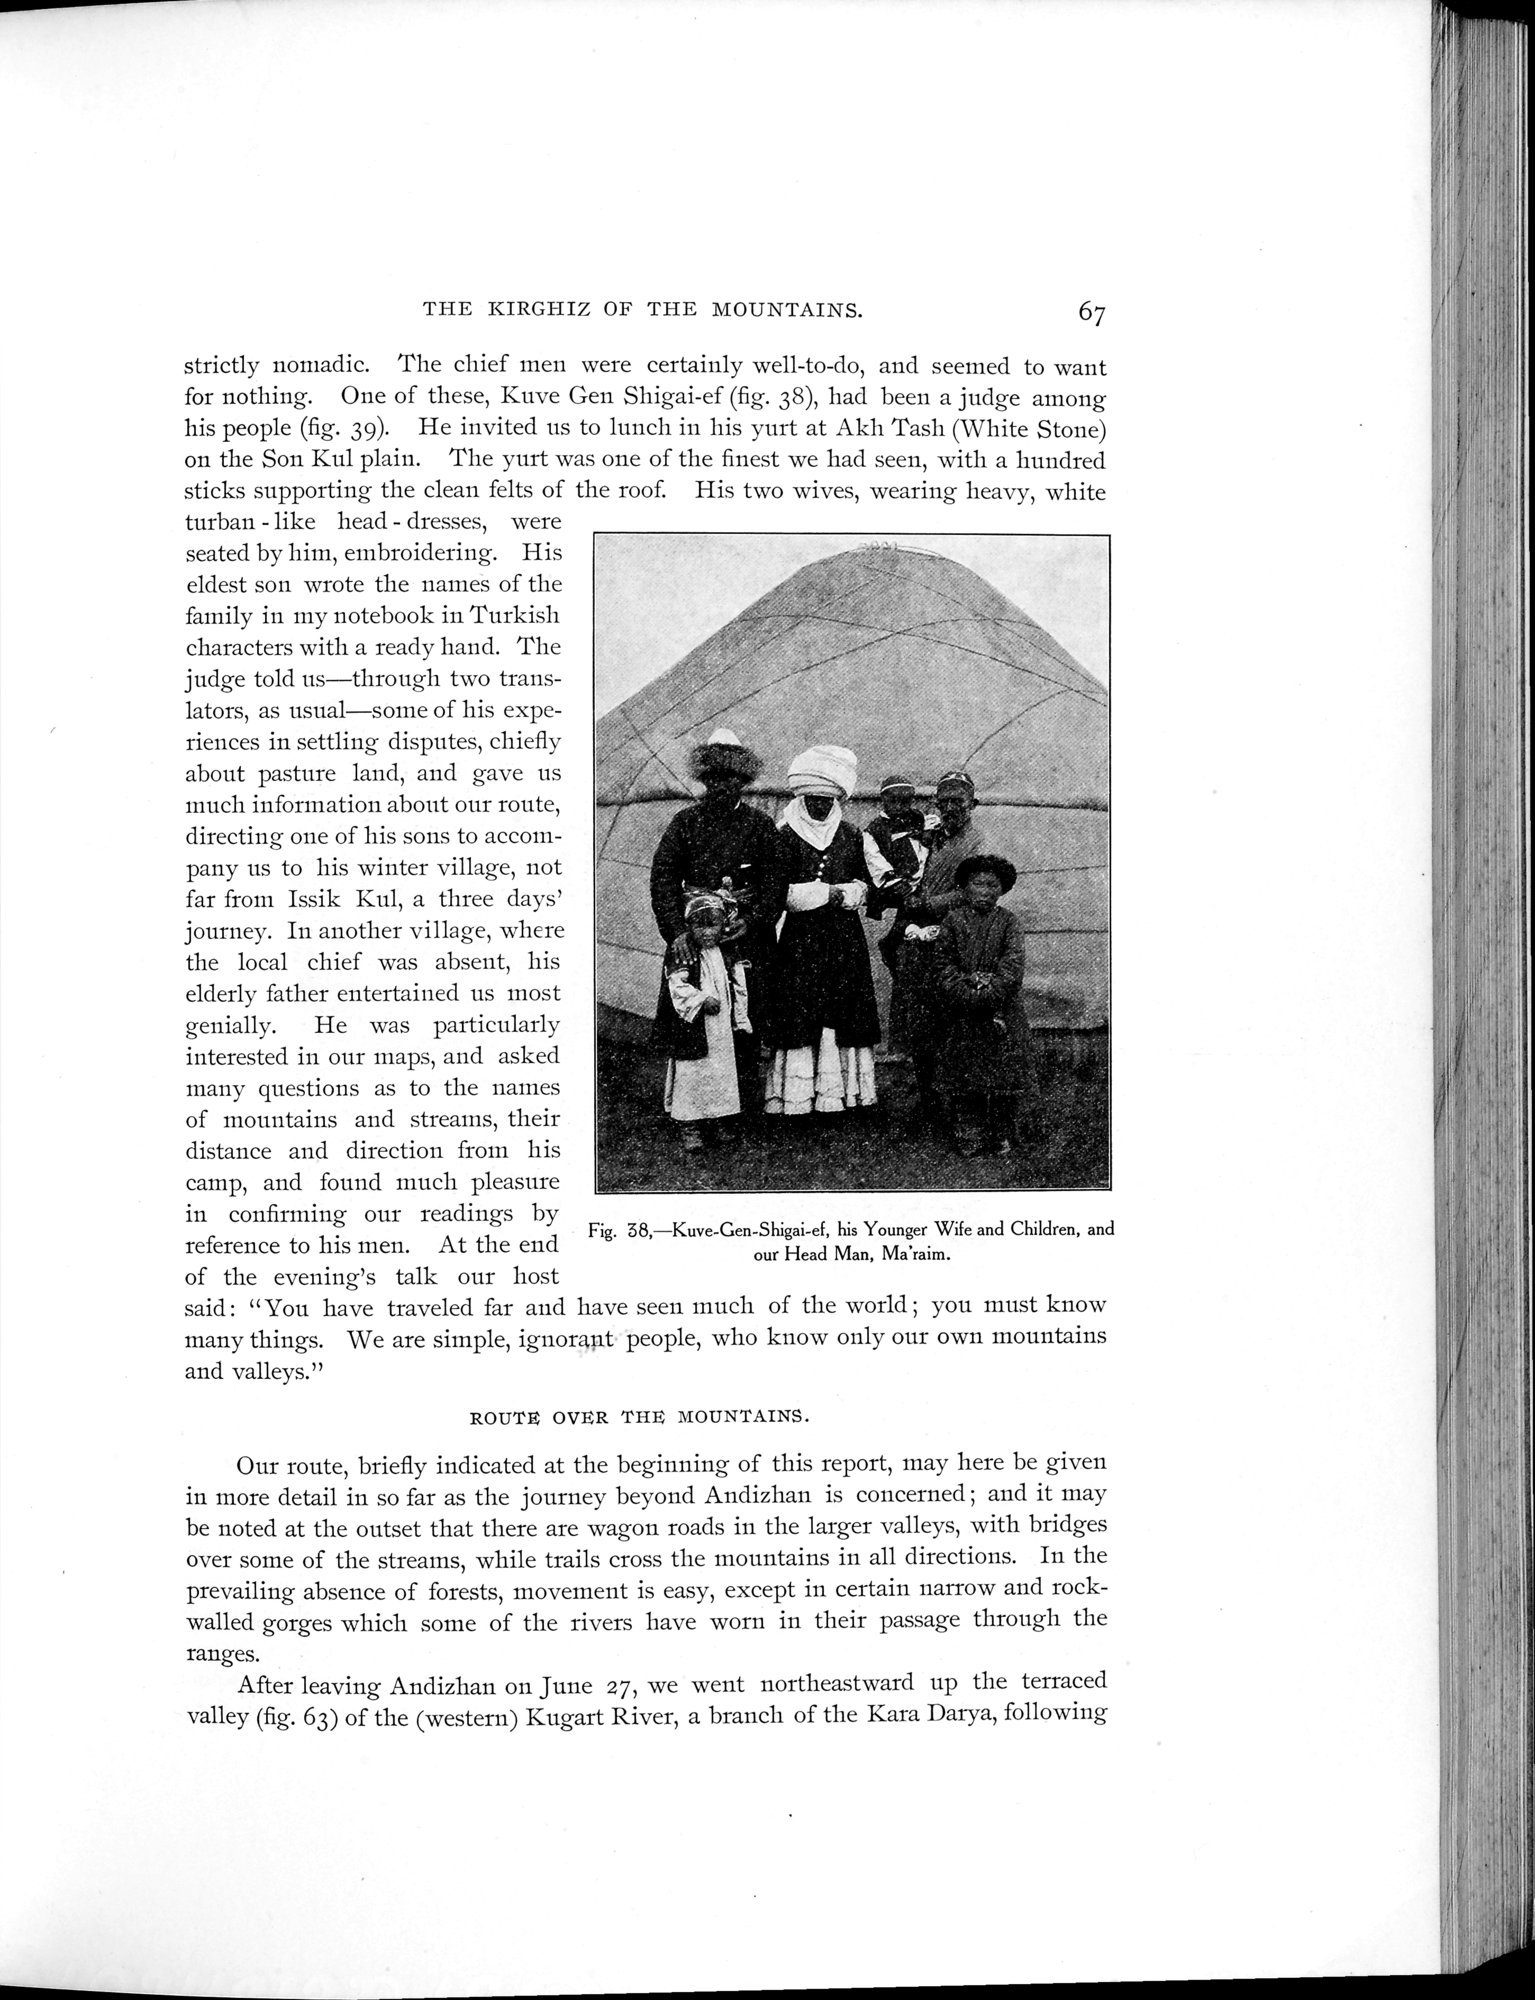 Explorations in Turkestan 1903 : vol.1 / Page 91 (Grayscale High Resolution Image)